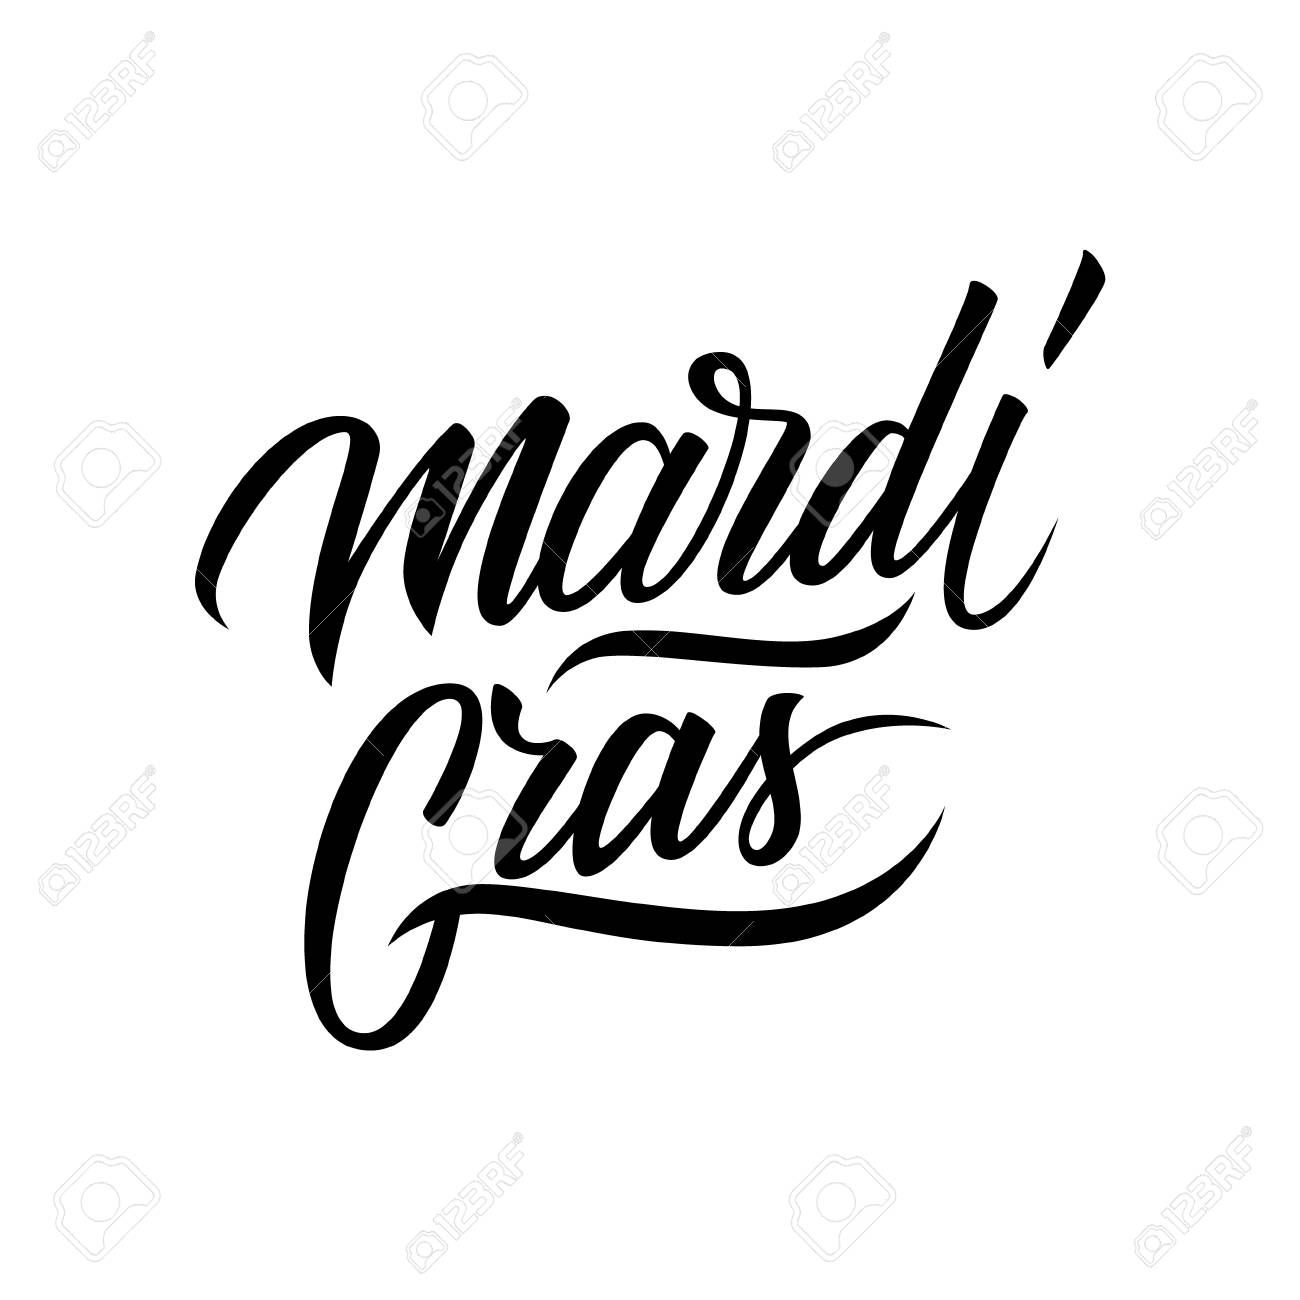 Mardi gras calligraphic lettering text design creative typography mardi gras calligraphic lettering text design creative typography for holiday greetings and invitation vector kristyandbryce Choice Image